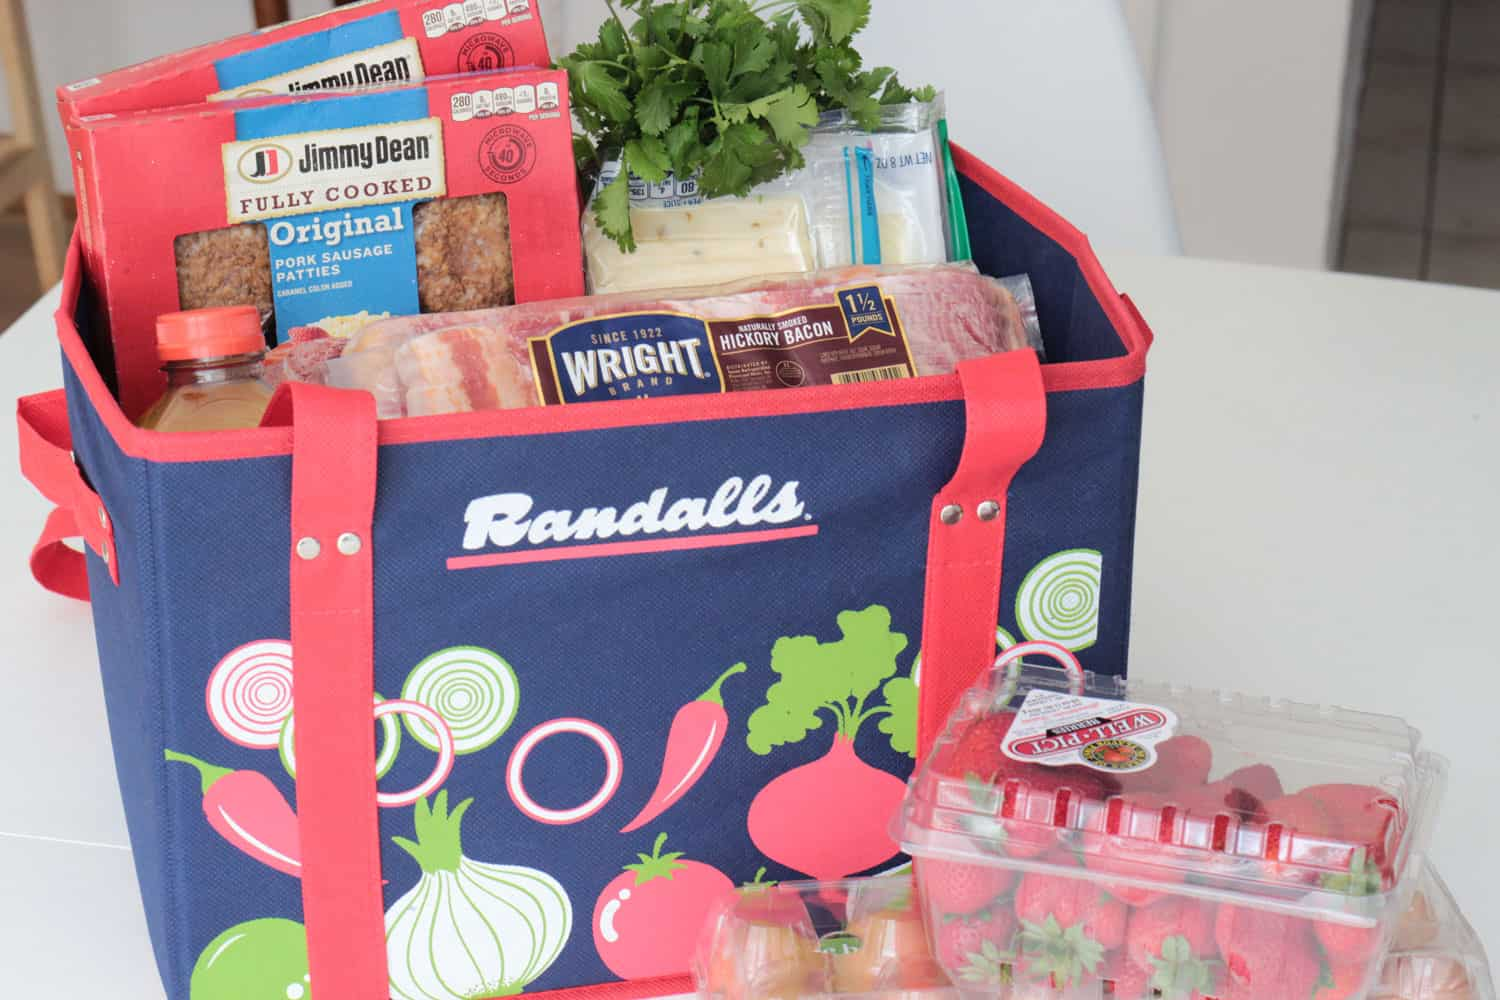 Randall's reusable grocery tote with Wright brand bacon, Jimmy Dean sausage, cheese and cilantro in it.